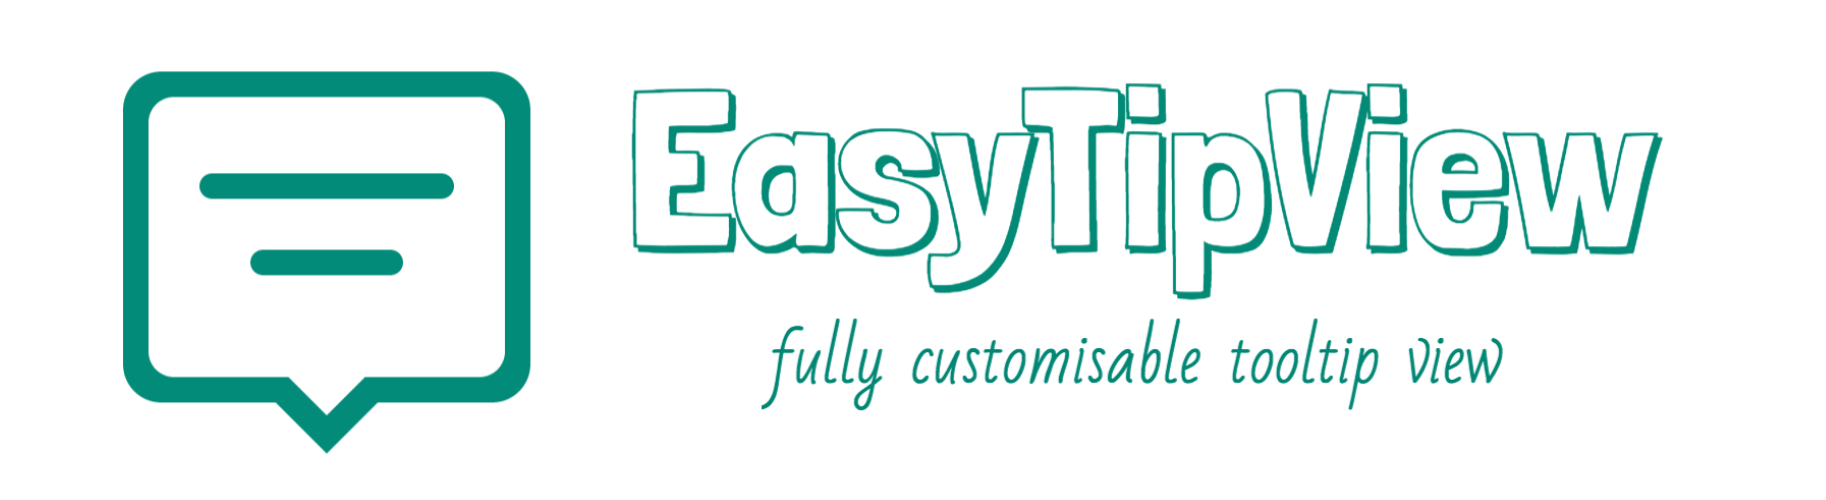 EasyTipView: fully customisable tooltip view written in Swift